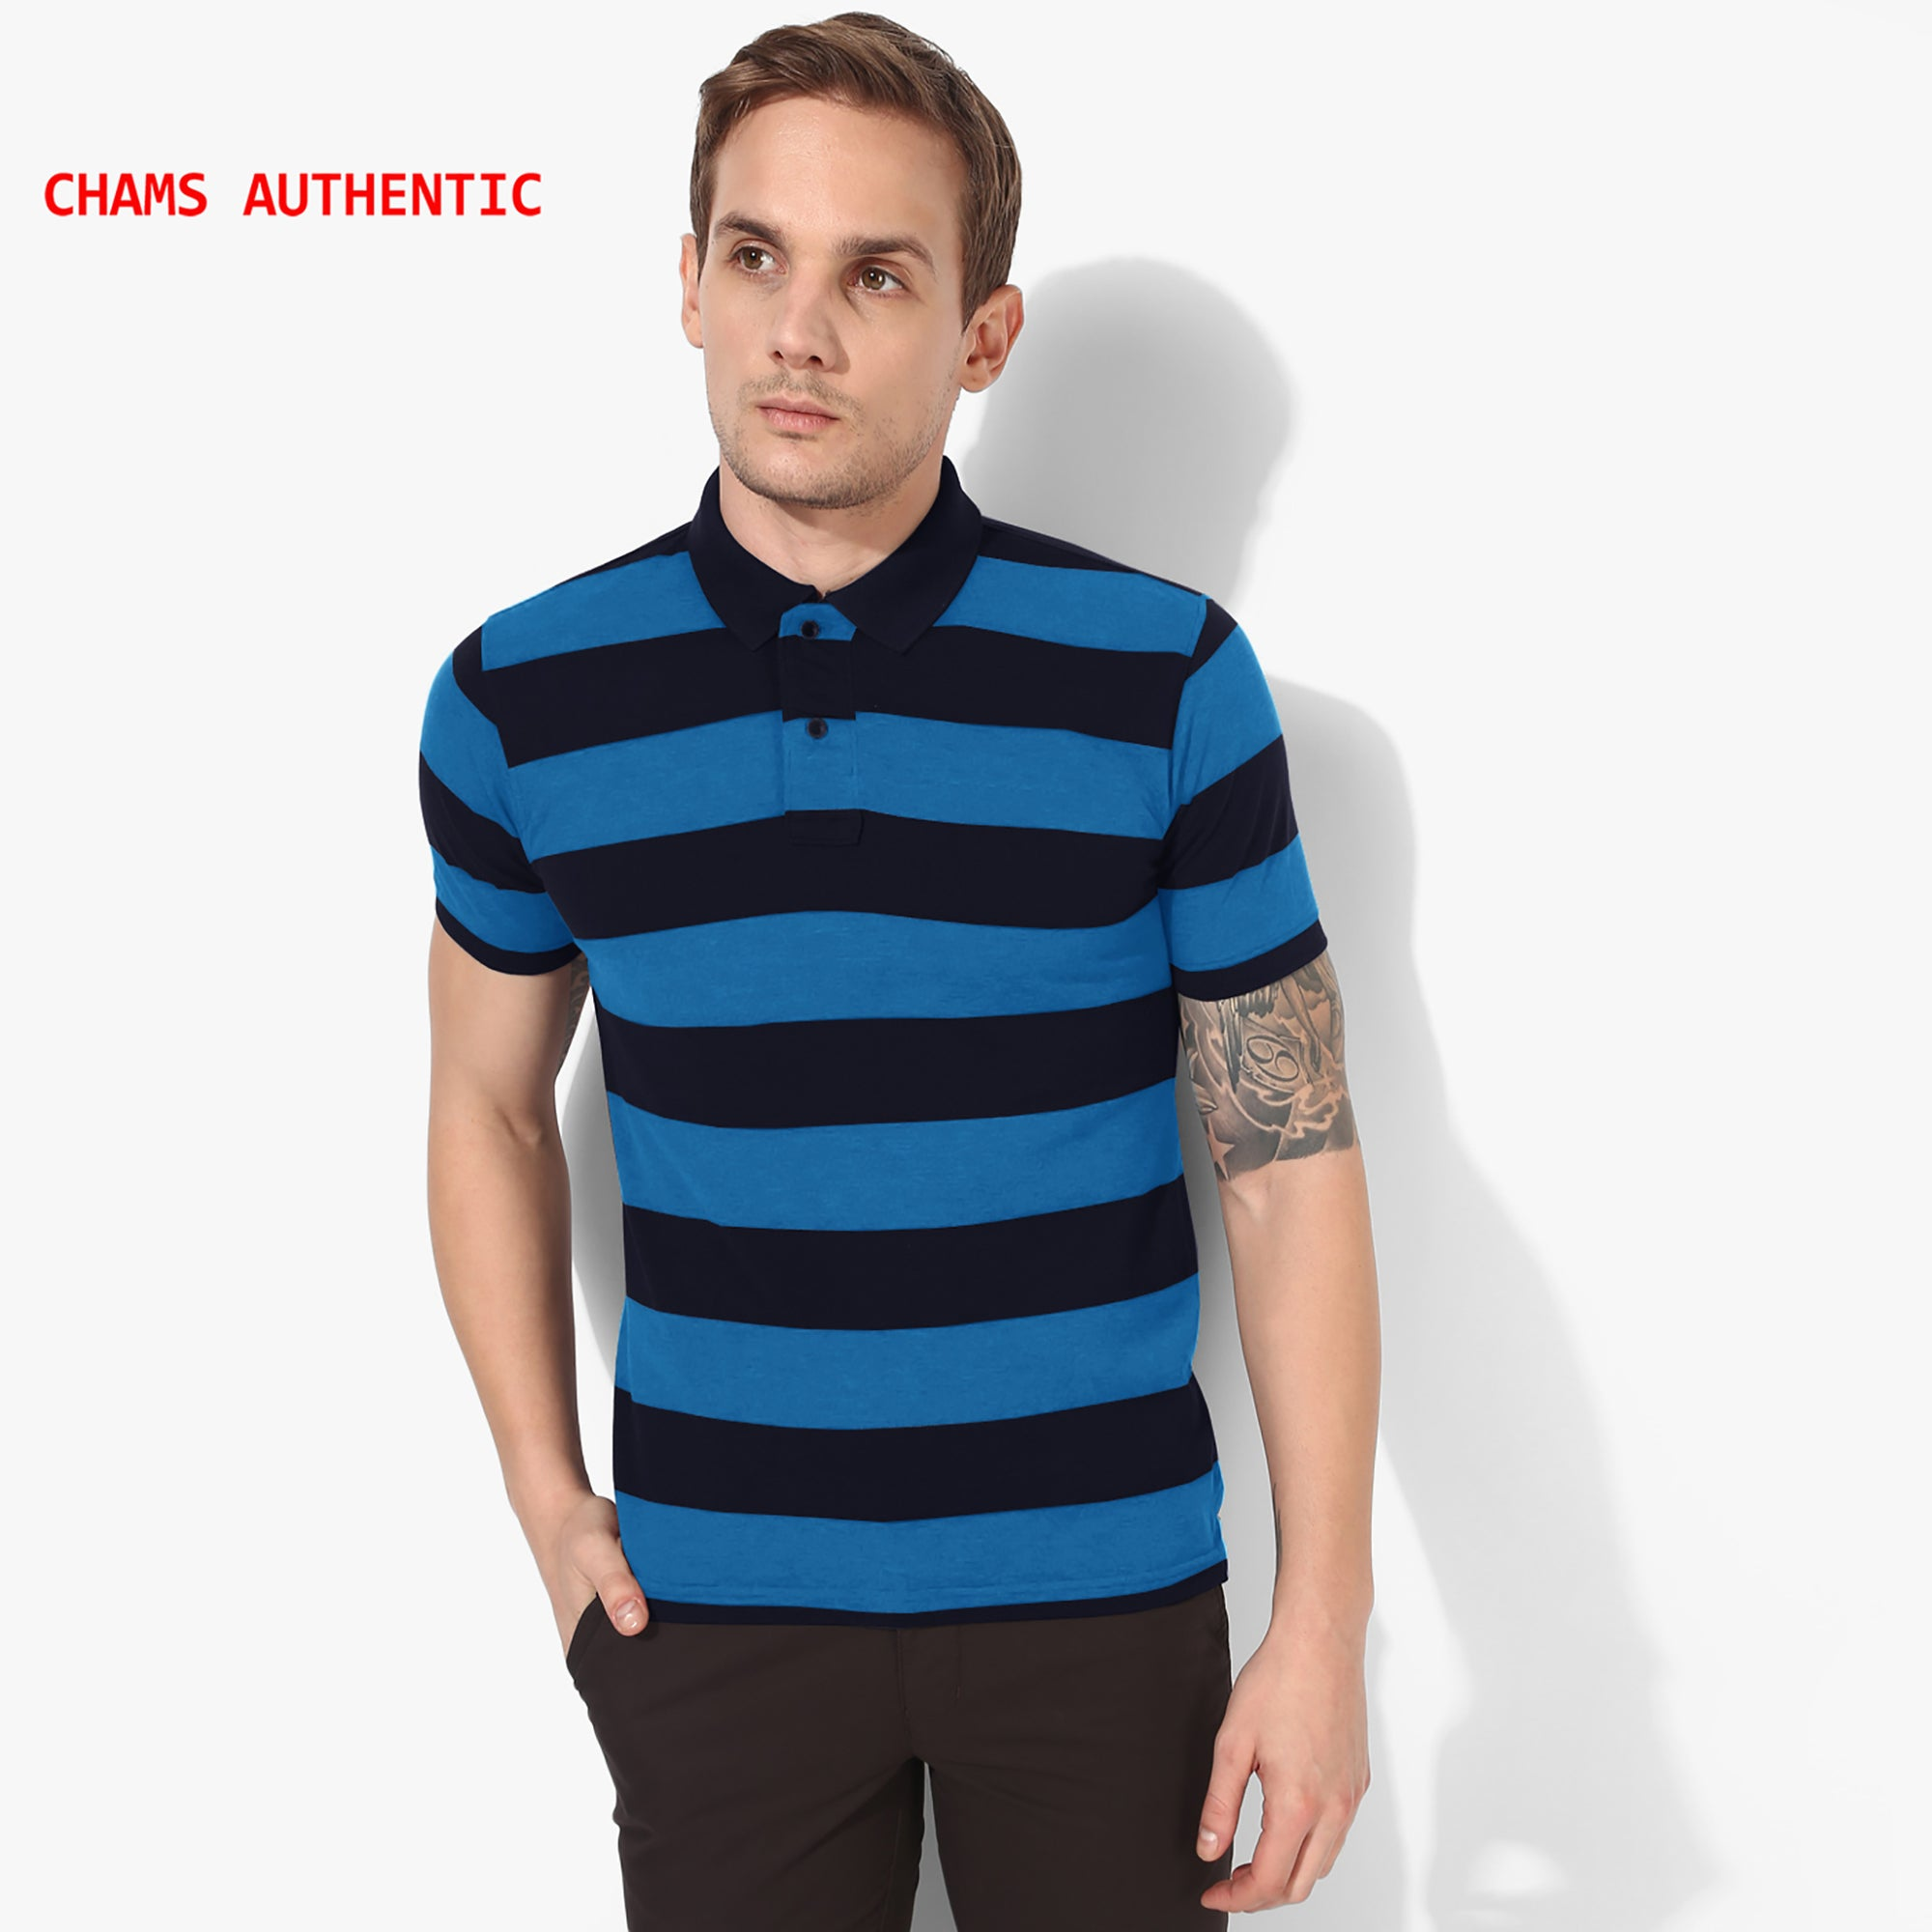 Chams Authentic P.Q Polo Shirt For Men-Dark Navy & Blue Stripes-NA1006